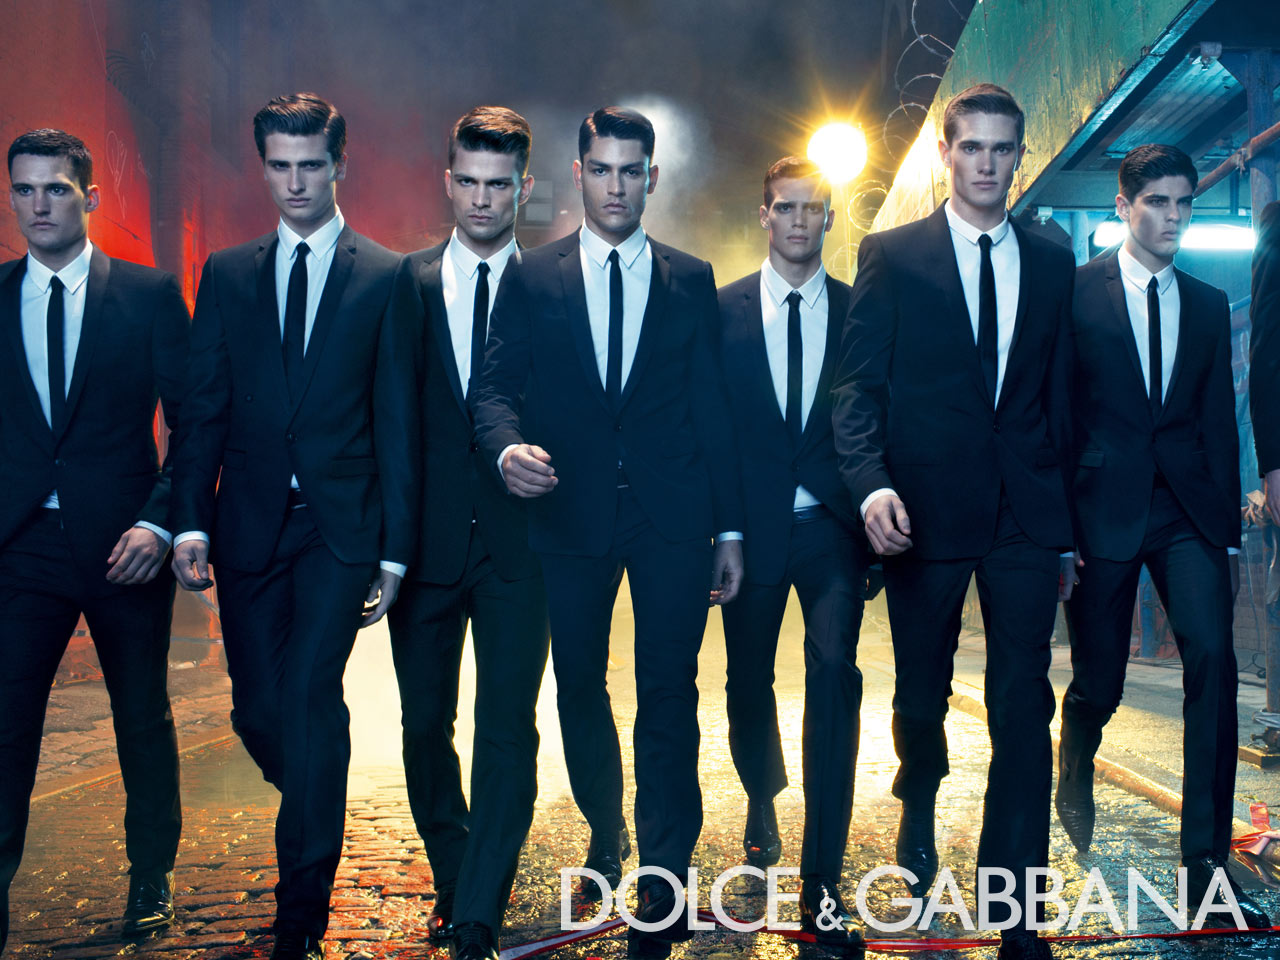 Dolce and Gabbana Male Models